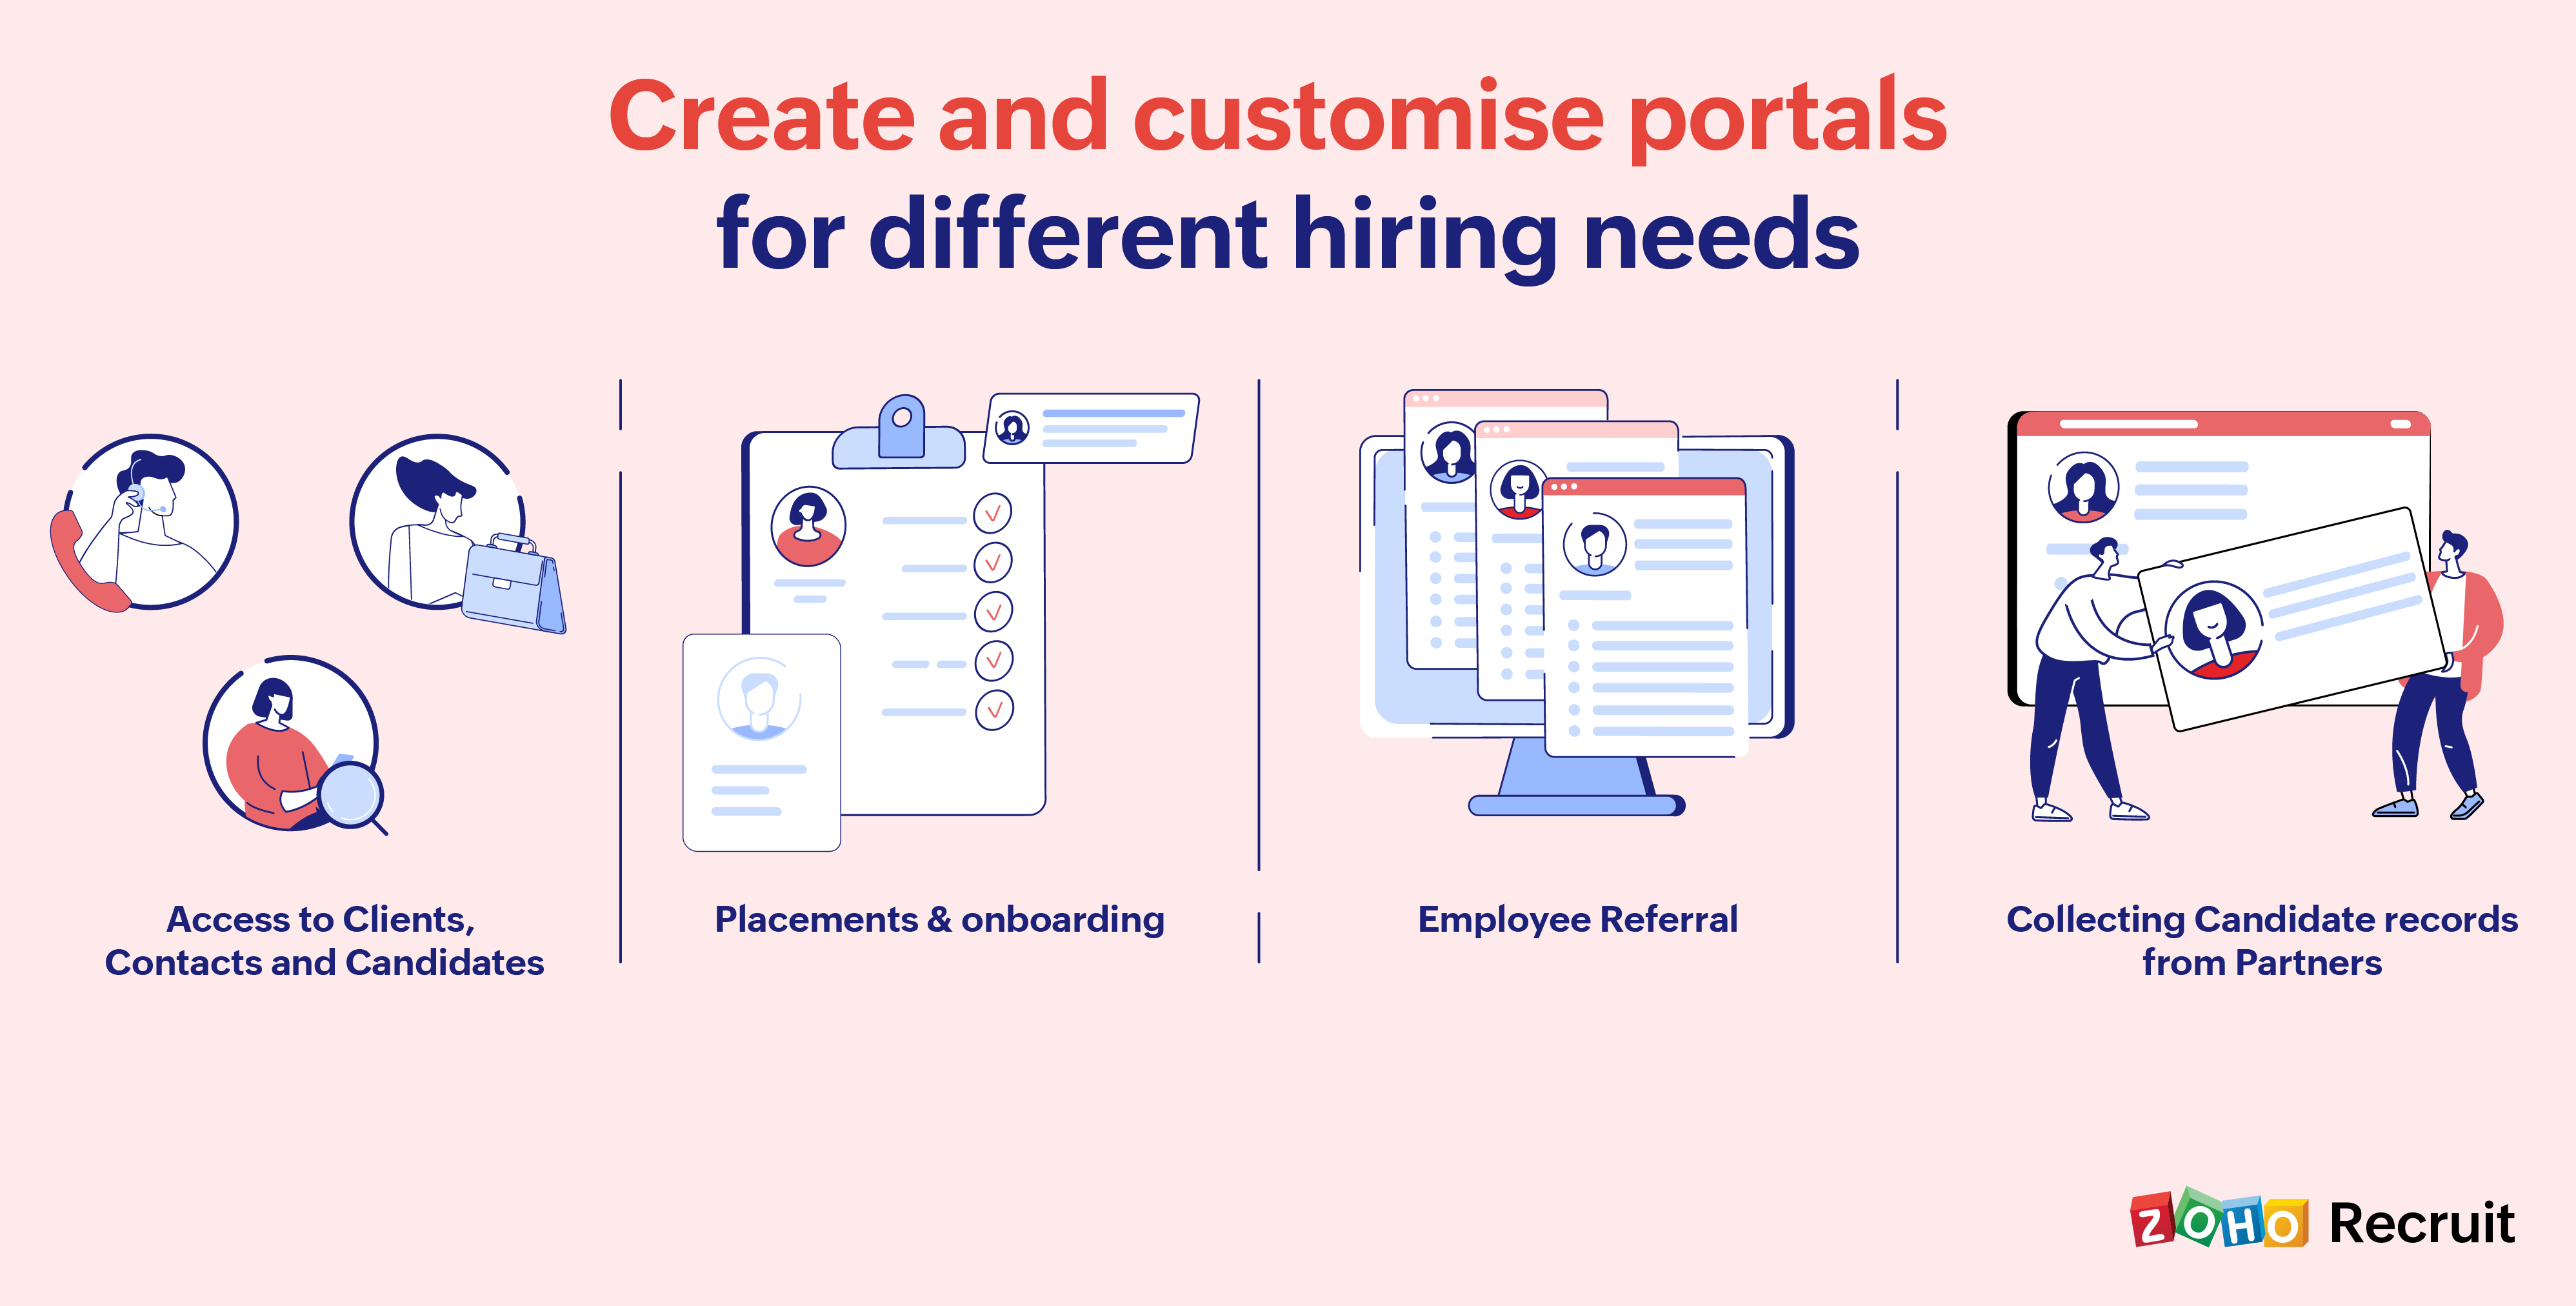 Introducing Custom Portals in Zoho Recruit